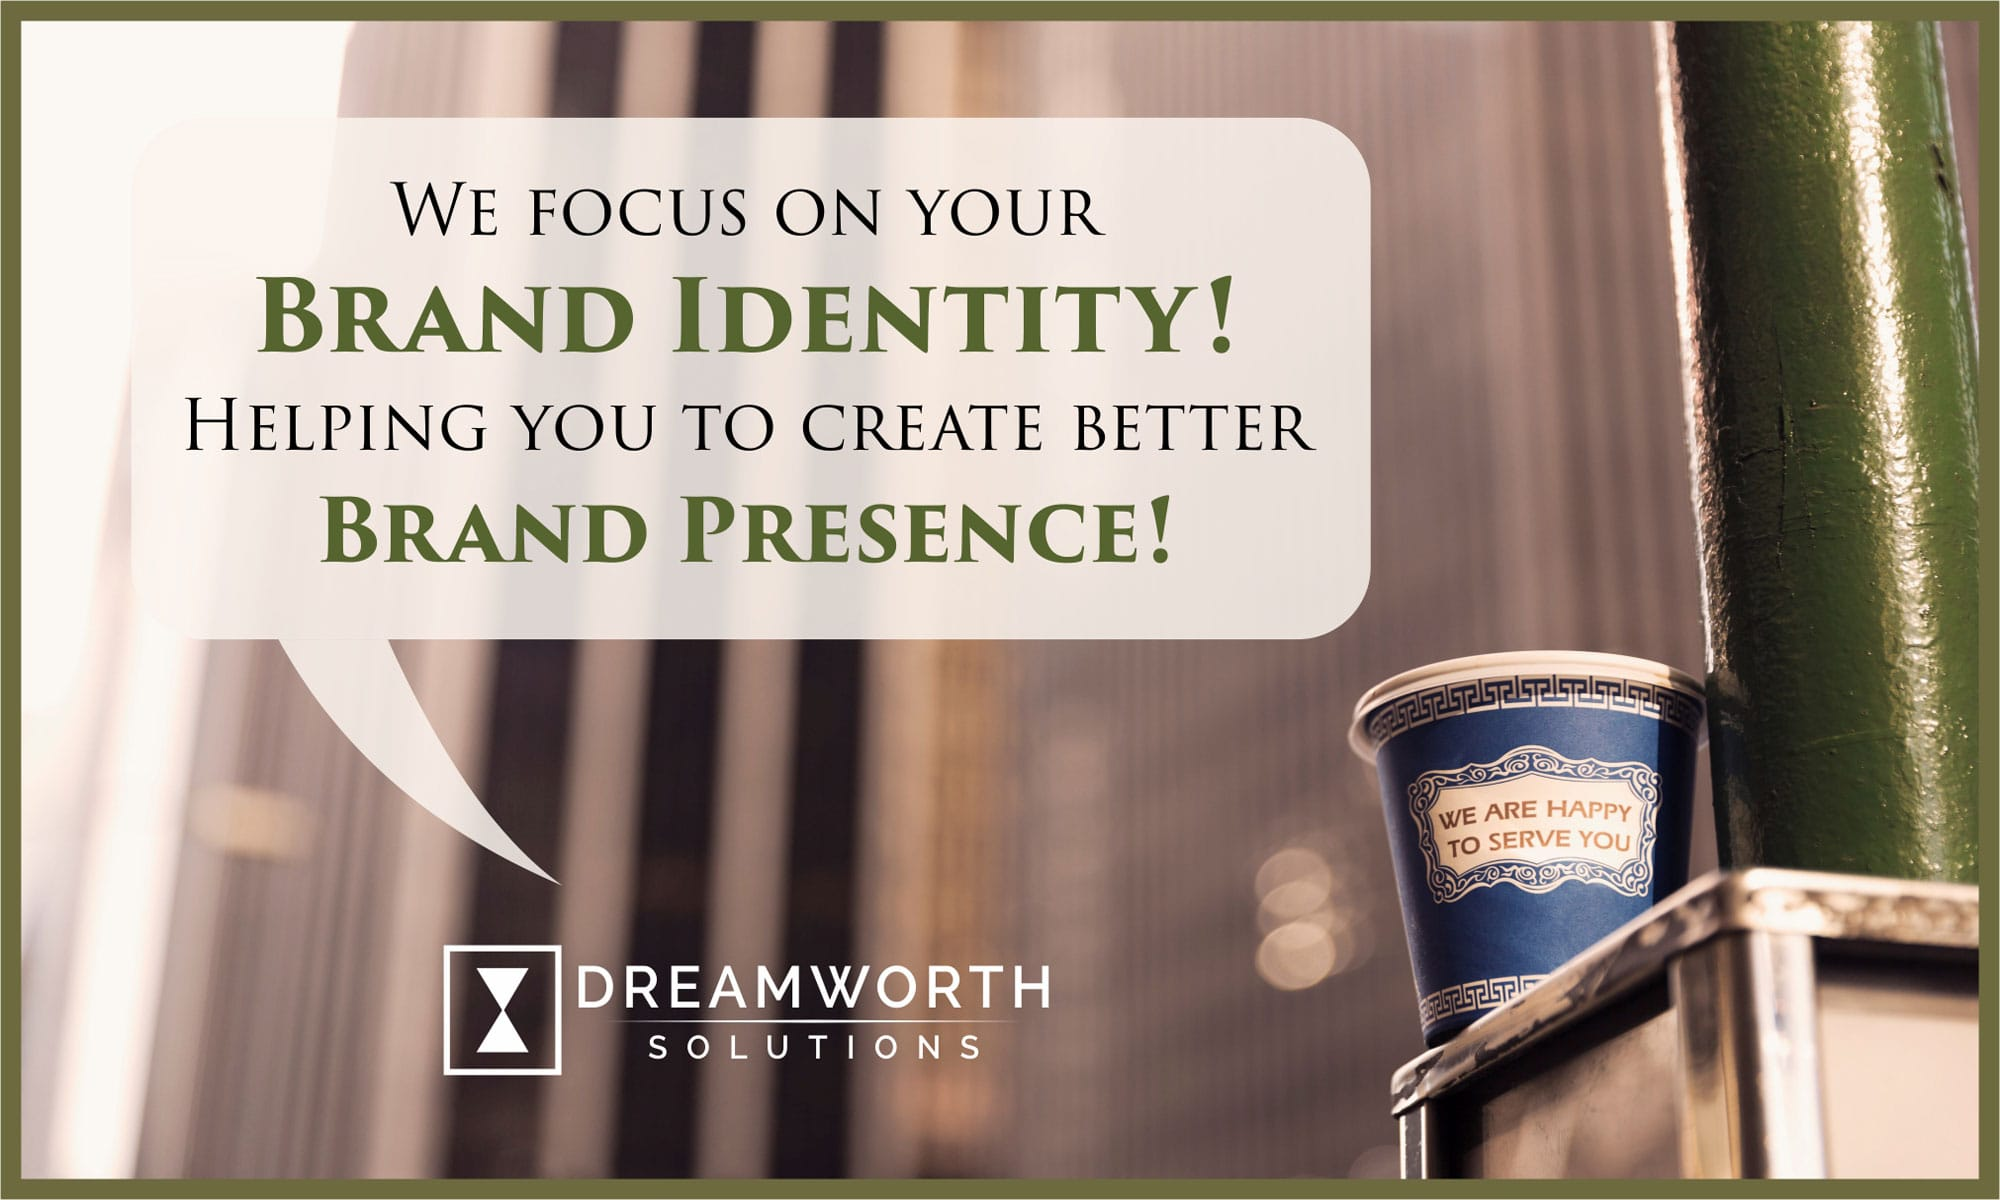 Dreamworth Solutions is a digital marketing company that uses brand identity